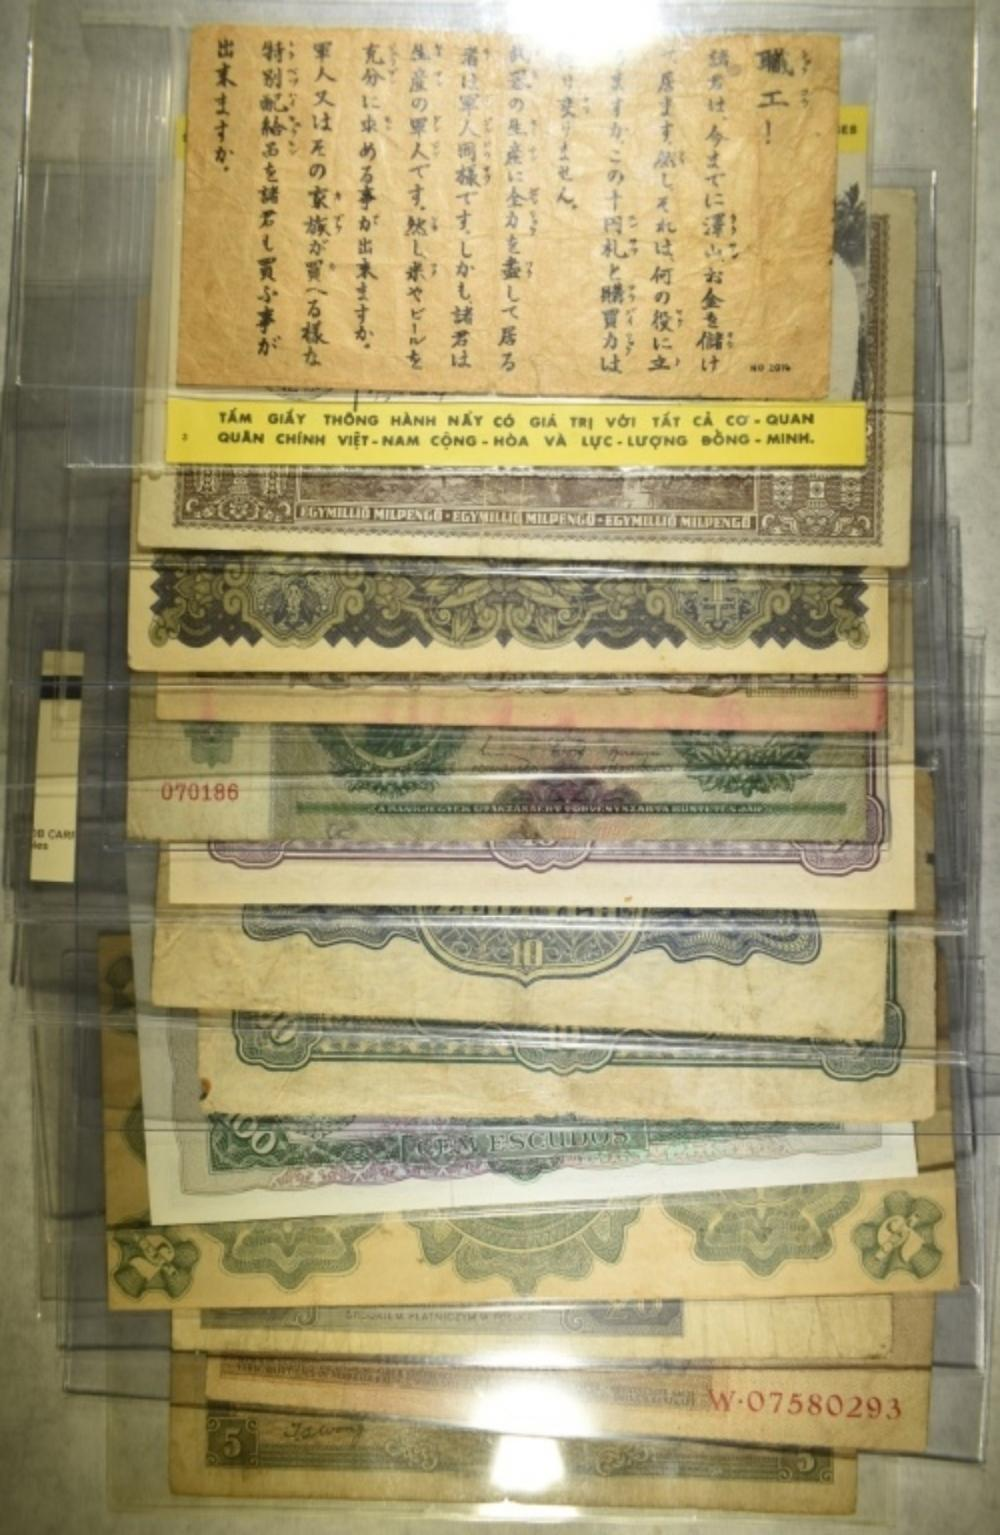 14 FOREIGN CURRENCY NOTES: